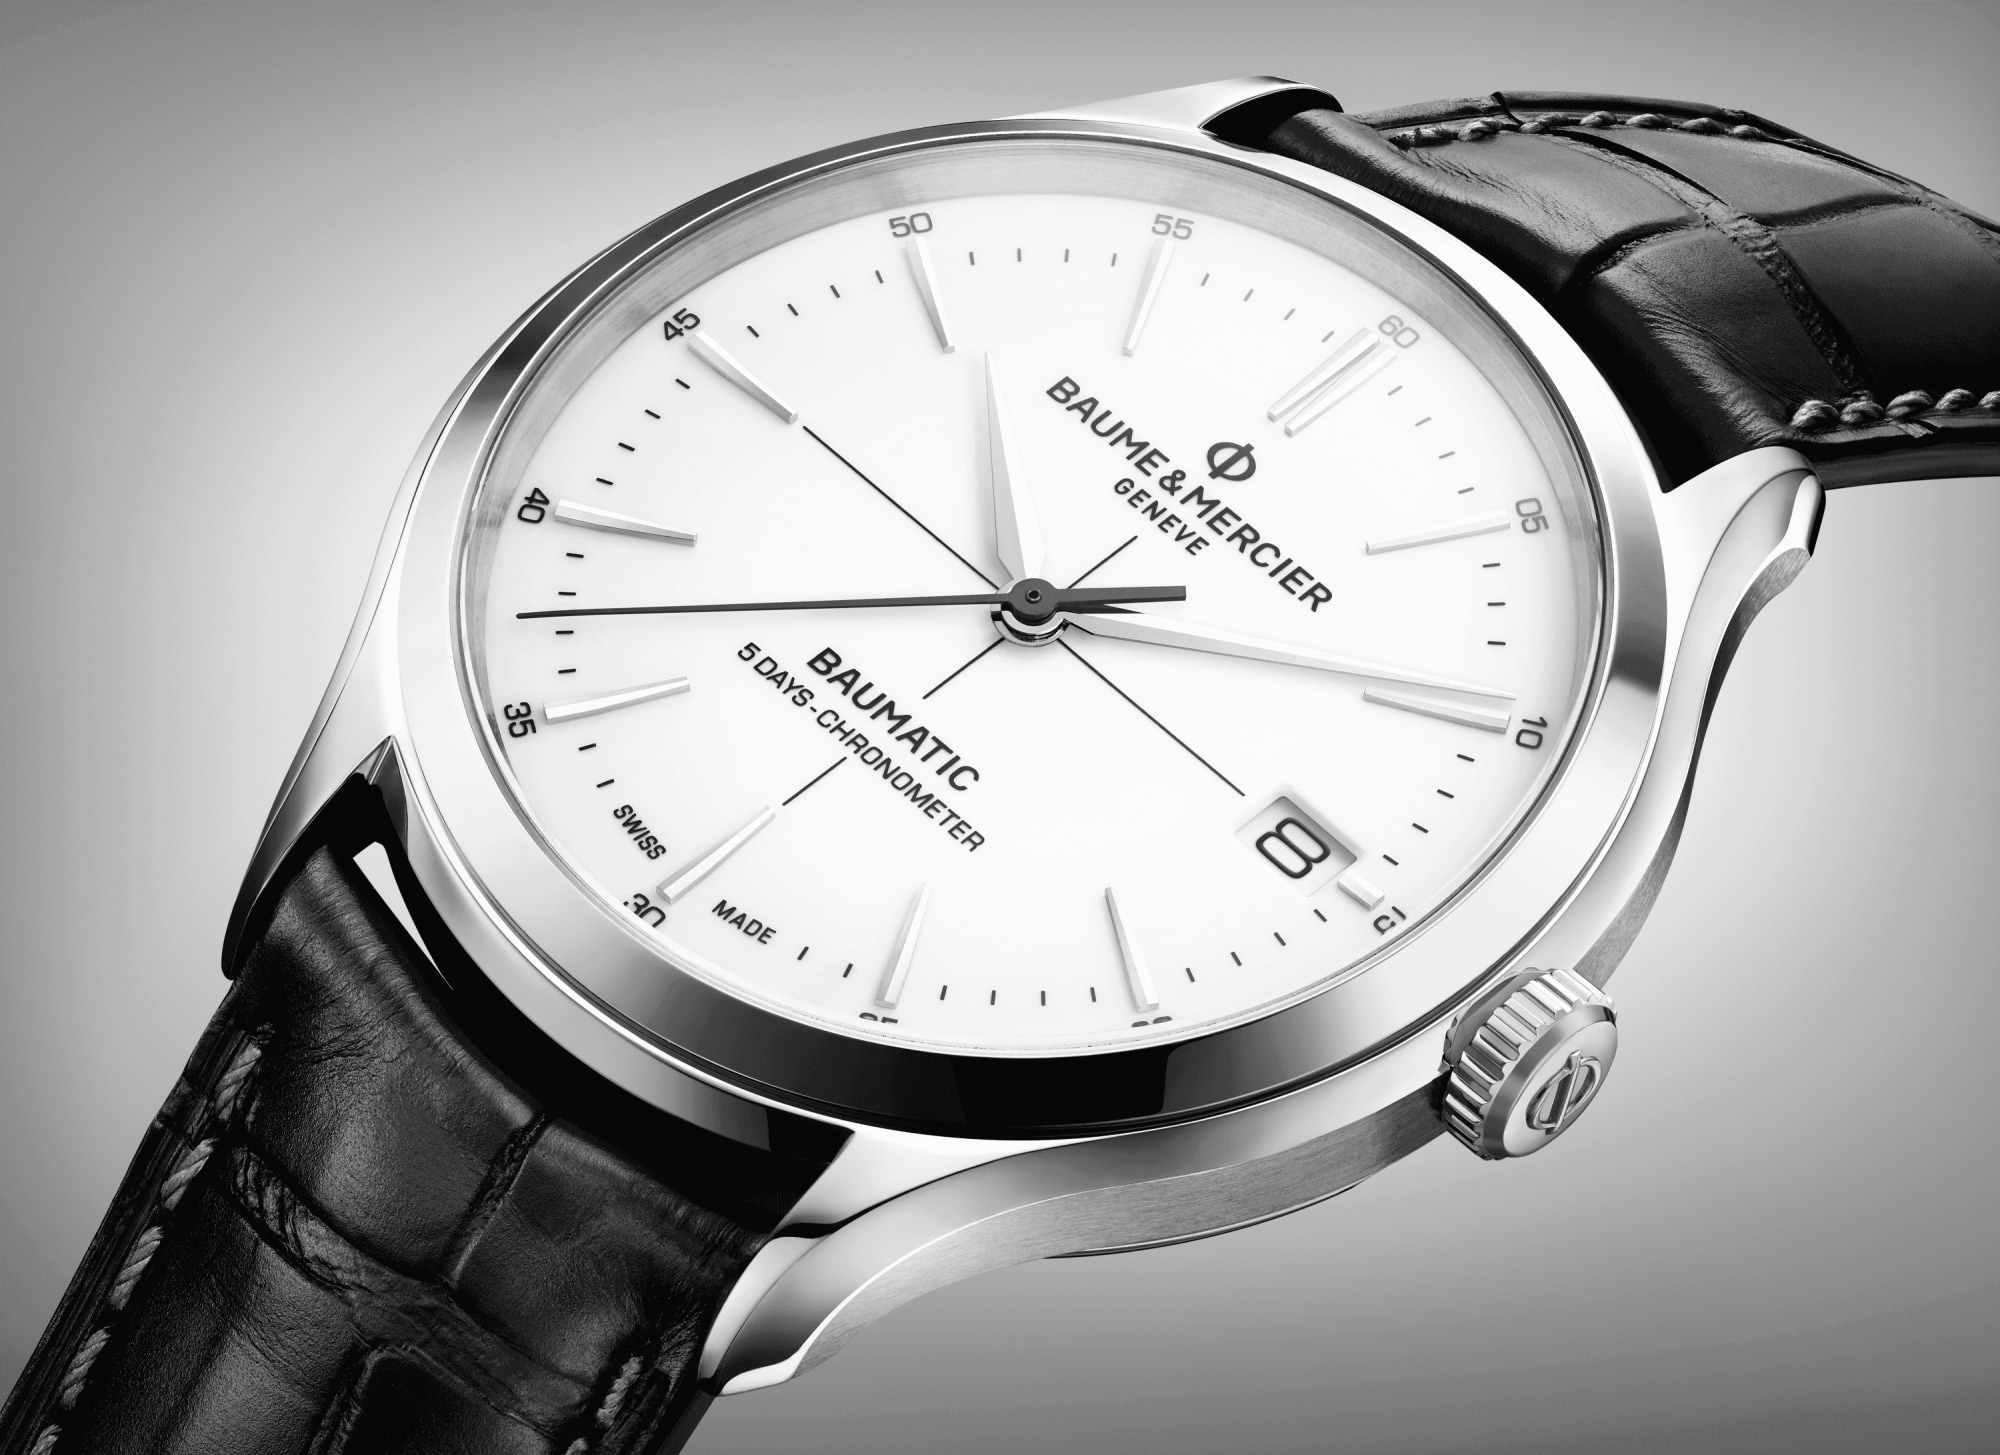 Clifton Baumatic 10436 Watch for men | Check Prices on Baume & Mercier Close-Up -